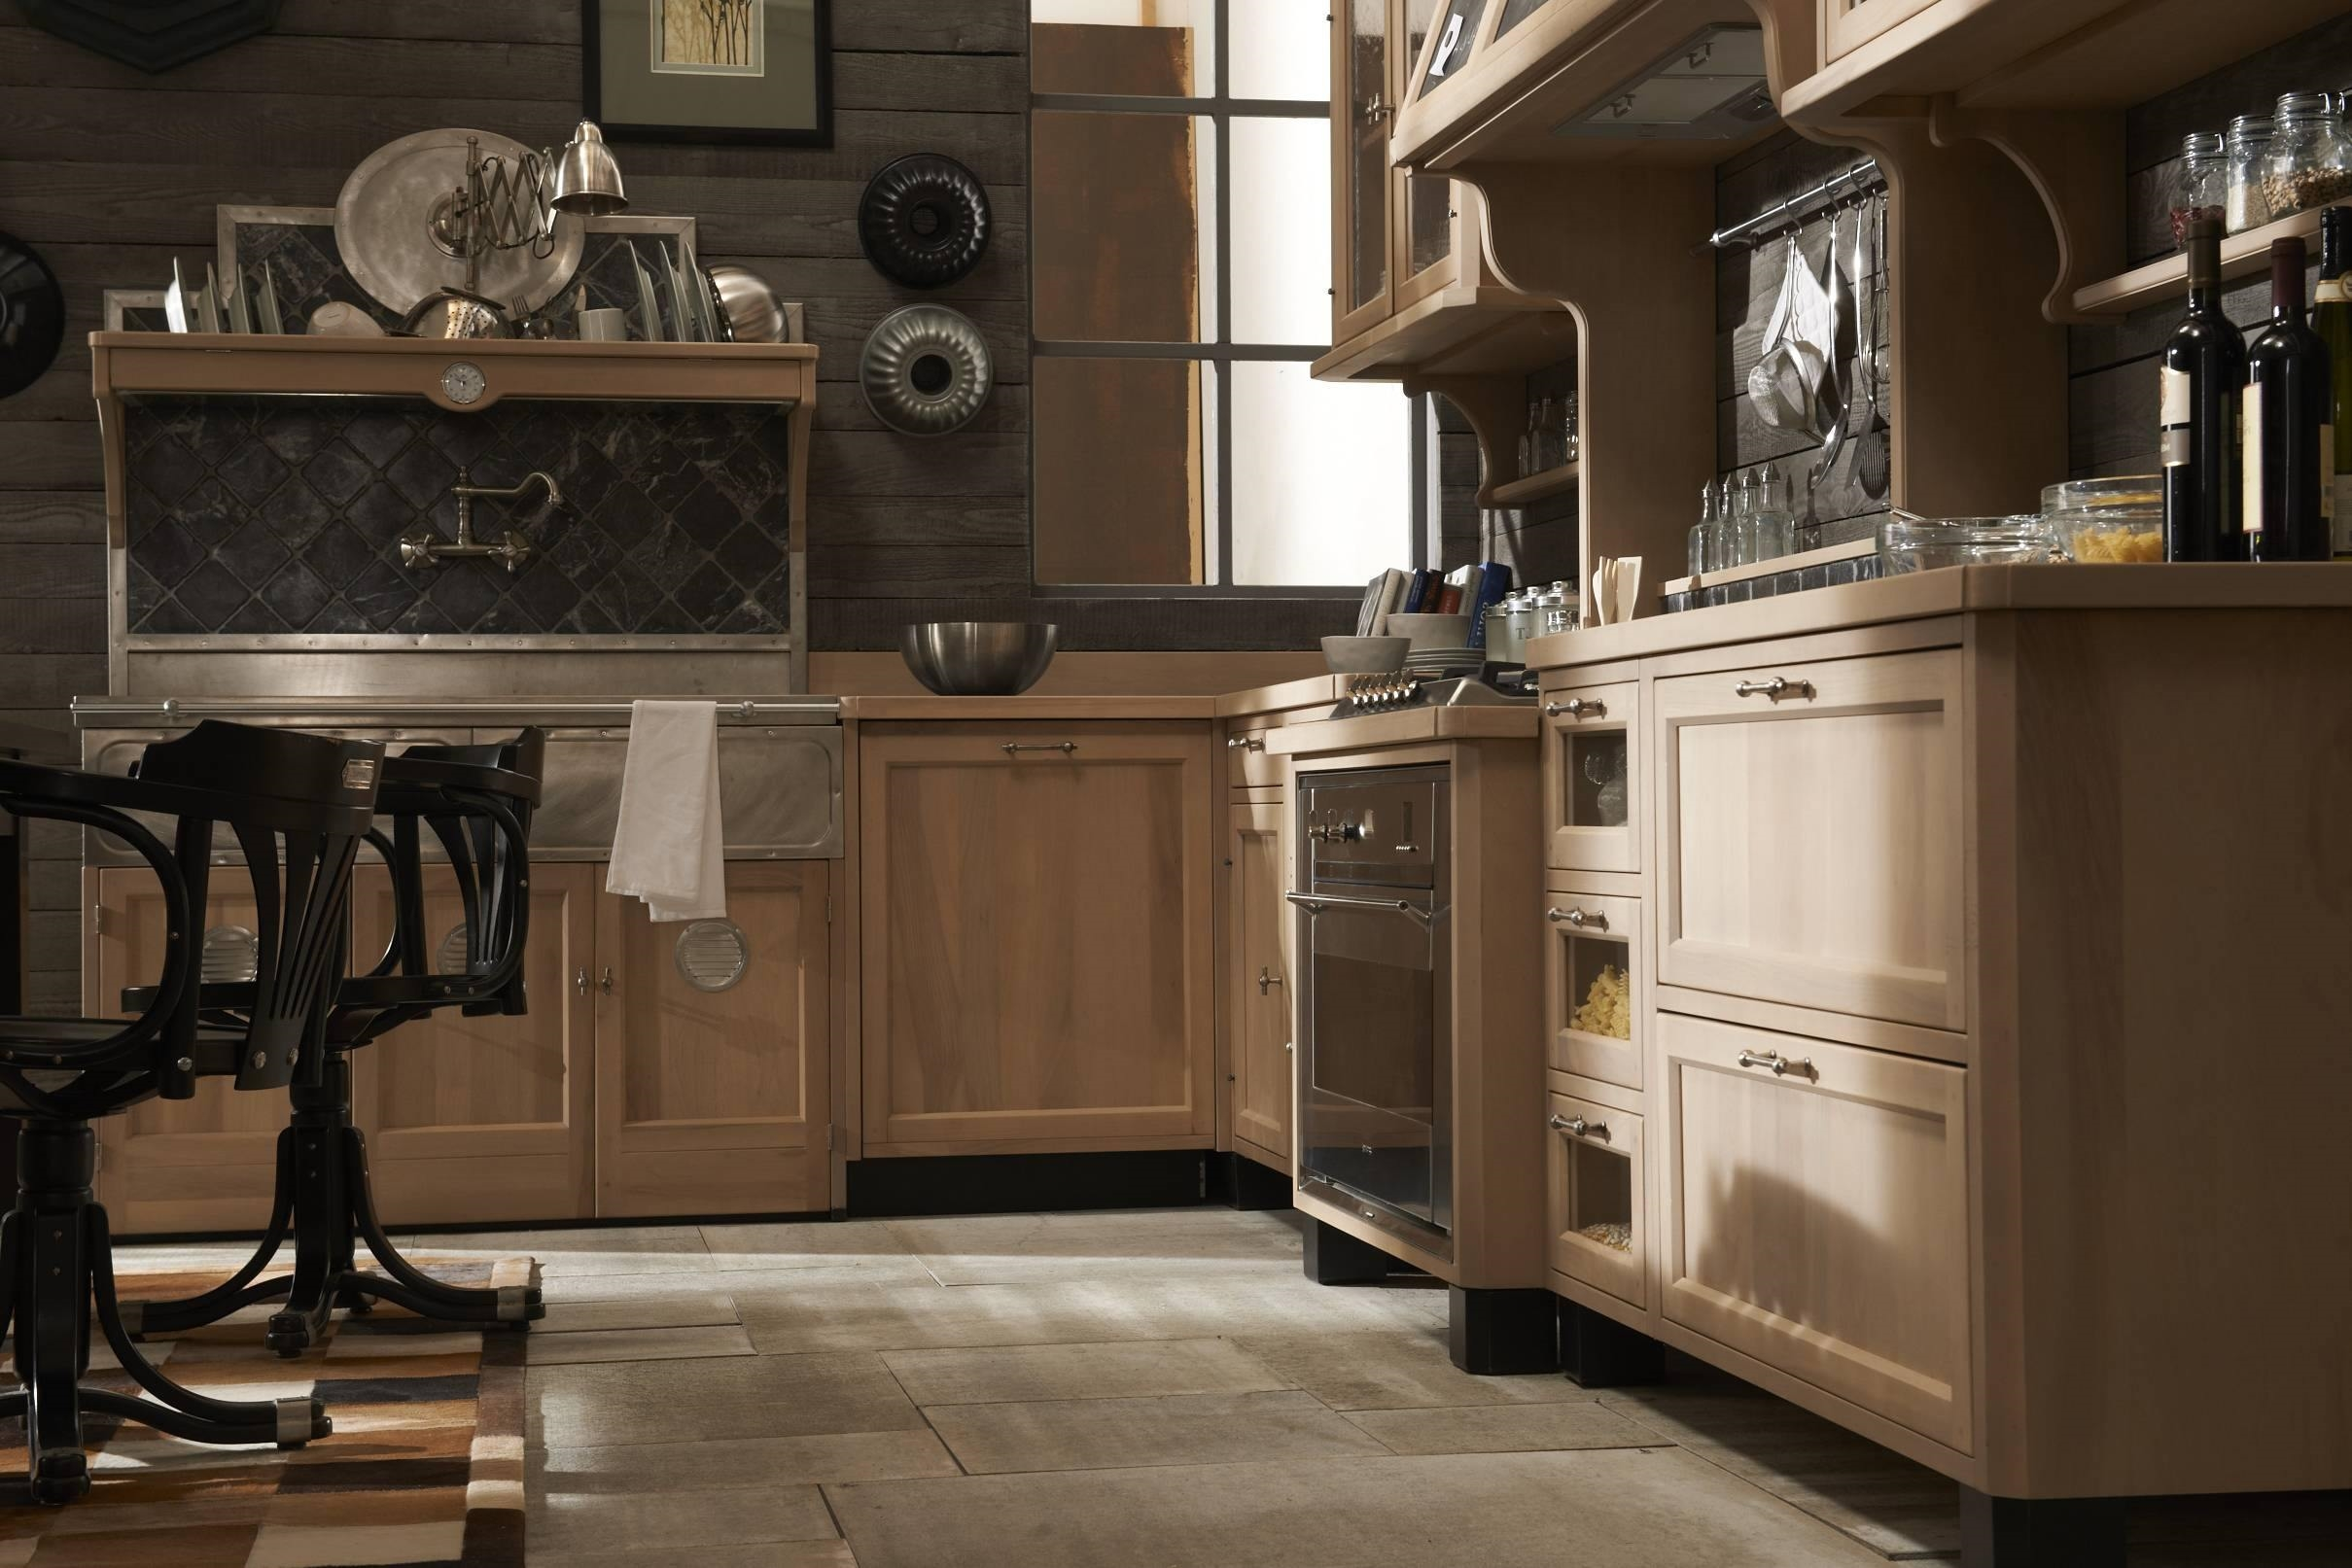 Marchi cucine country simple emejing marche cucine tedesche images ideas u design with marchi - Marchi cucine italiane ...